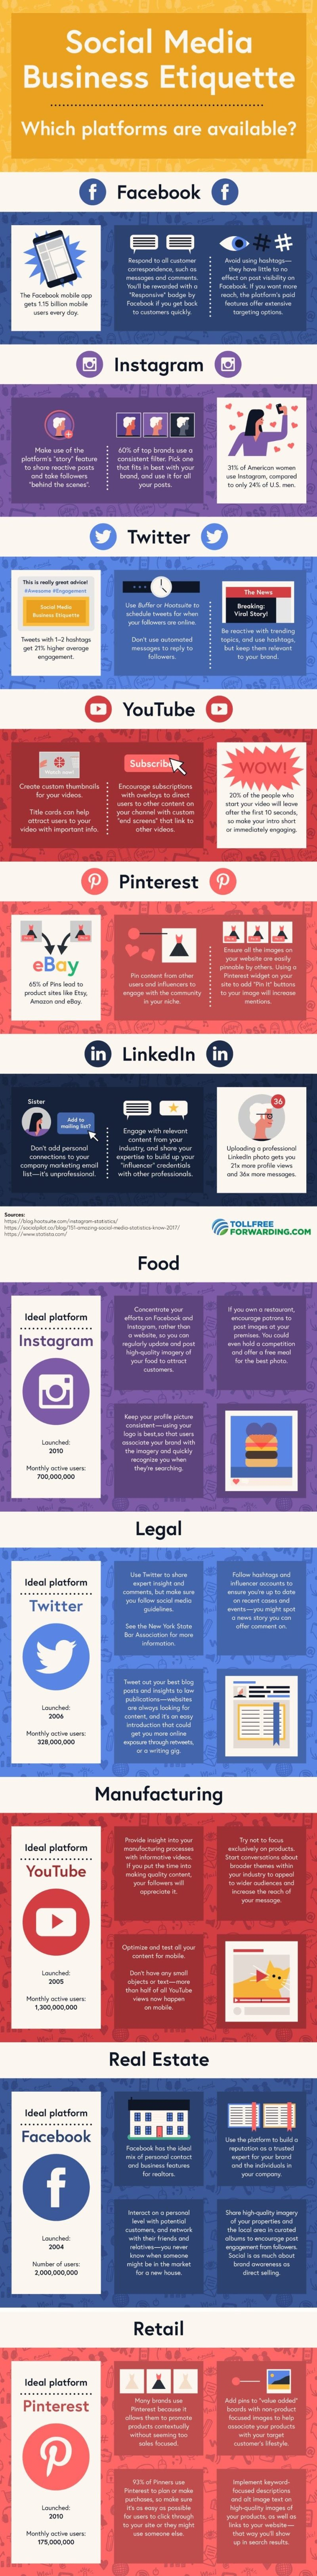 Following Proper Social Media Etiquette -- An Infographic